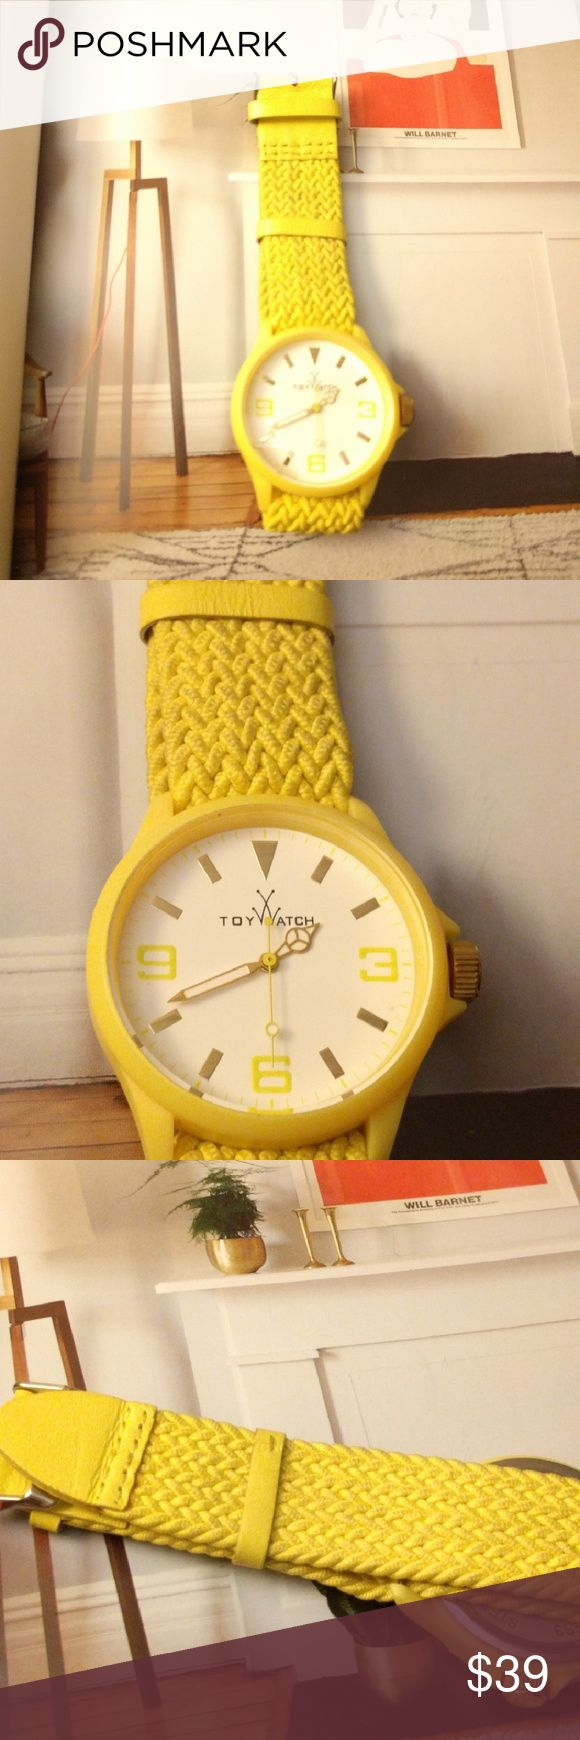 Toywatch Watch women's classic dial Yellow color with elastic strap made of cloth also the strap , is juts the watch no box Toywatch Accessories Watches